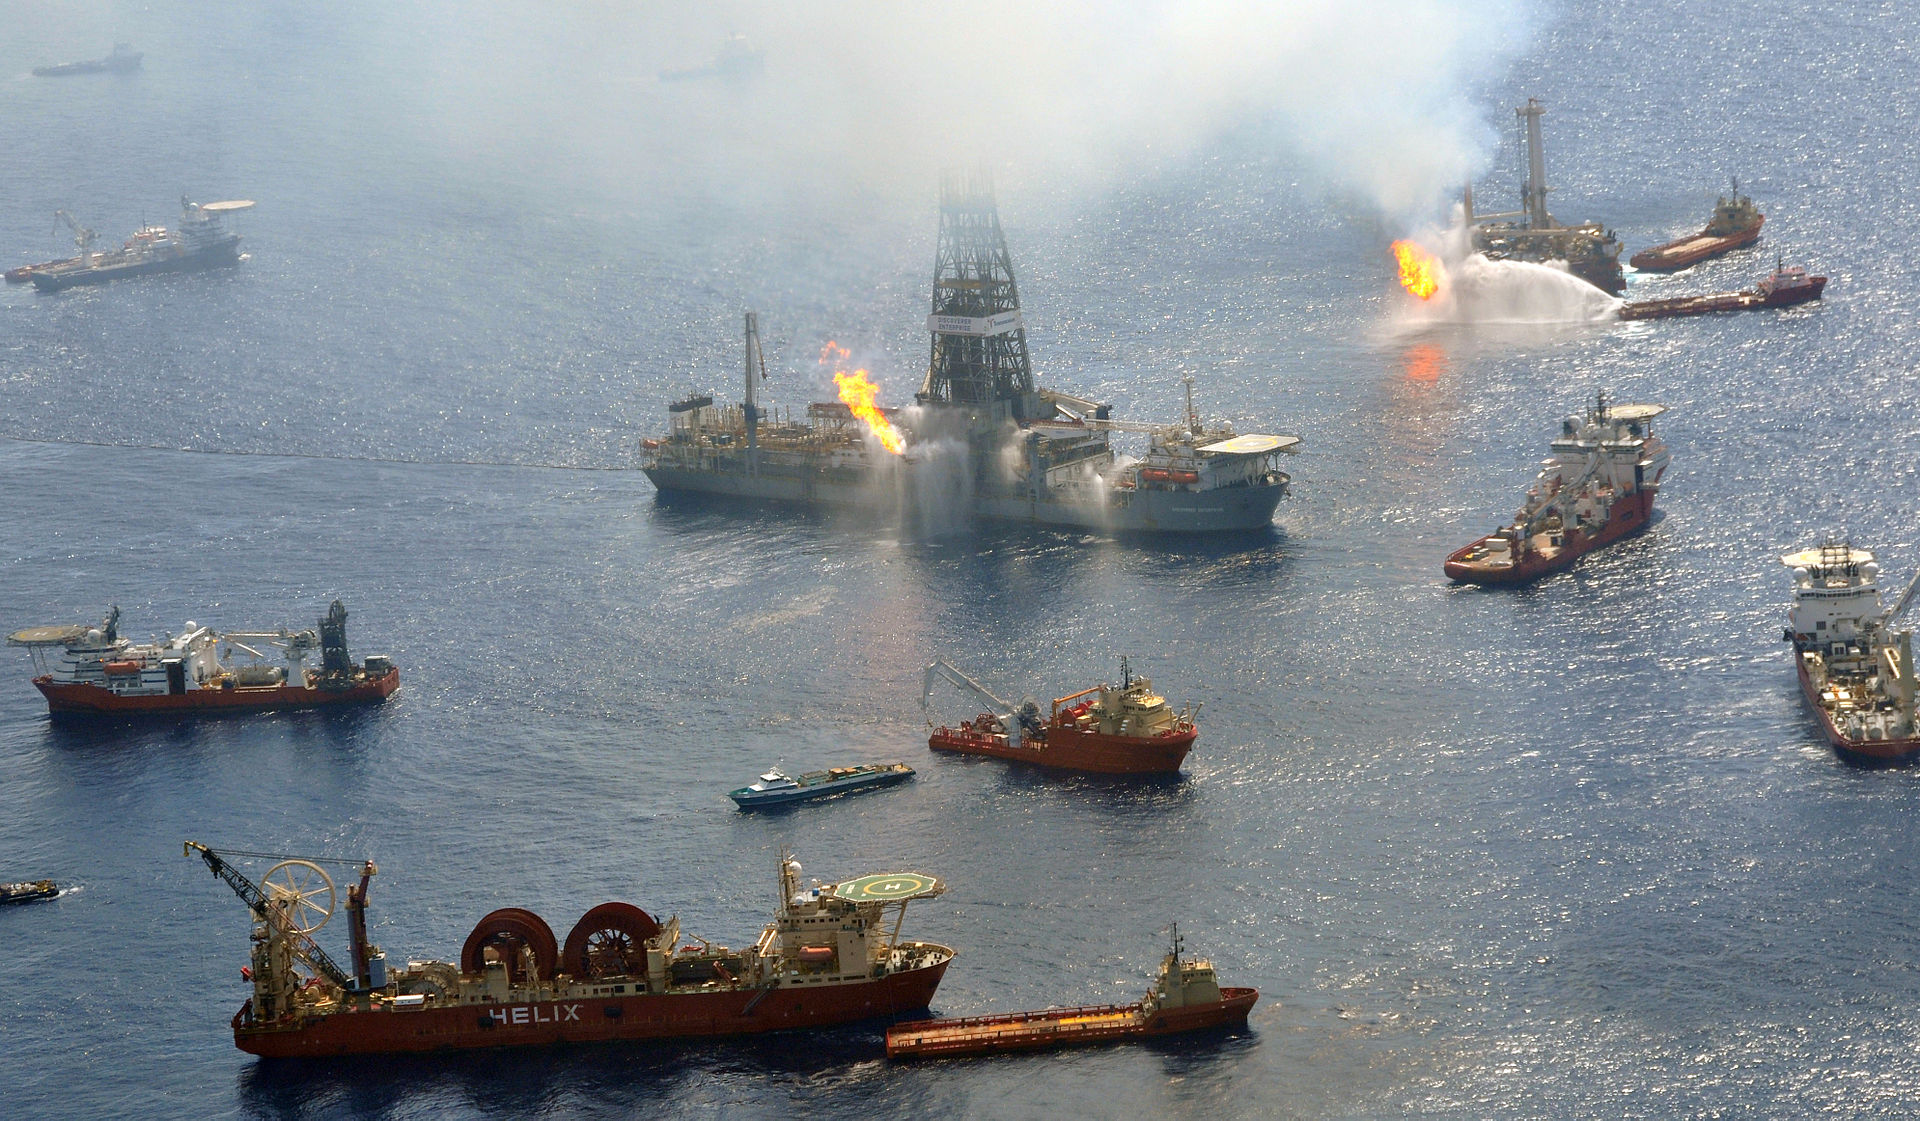 ... link dolphin deaths in Gulf to 2010 BP spill - Capital Gazette